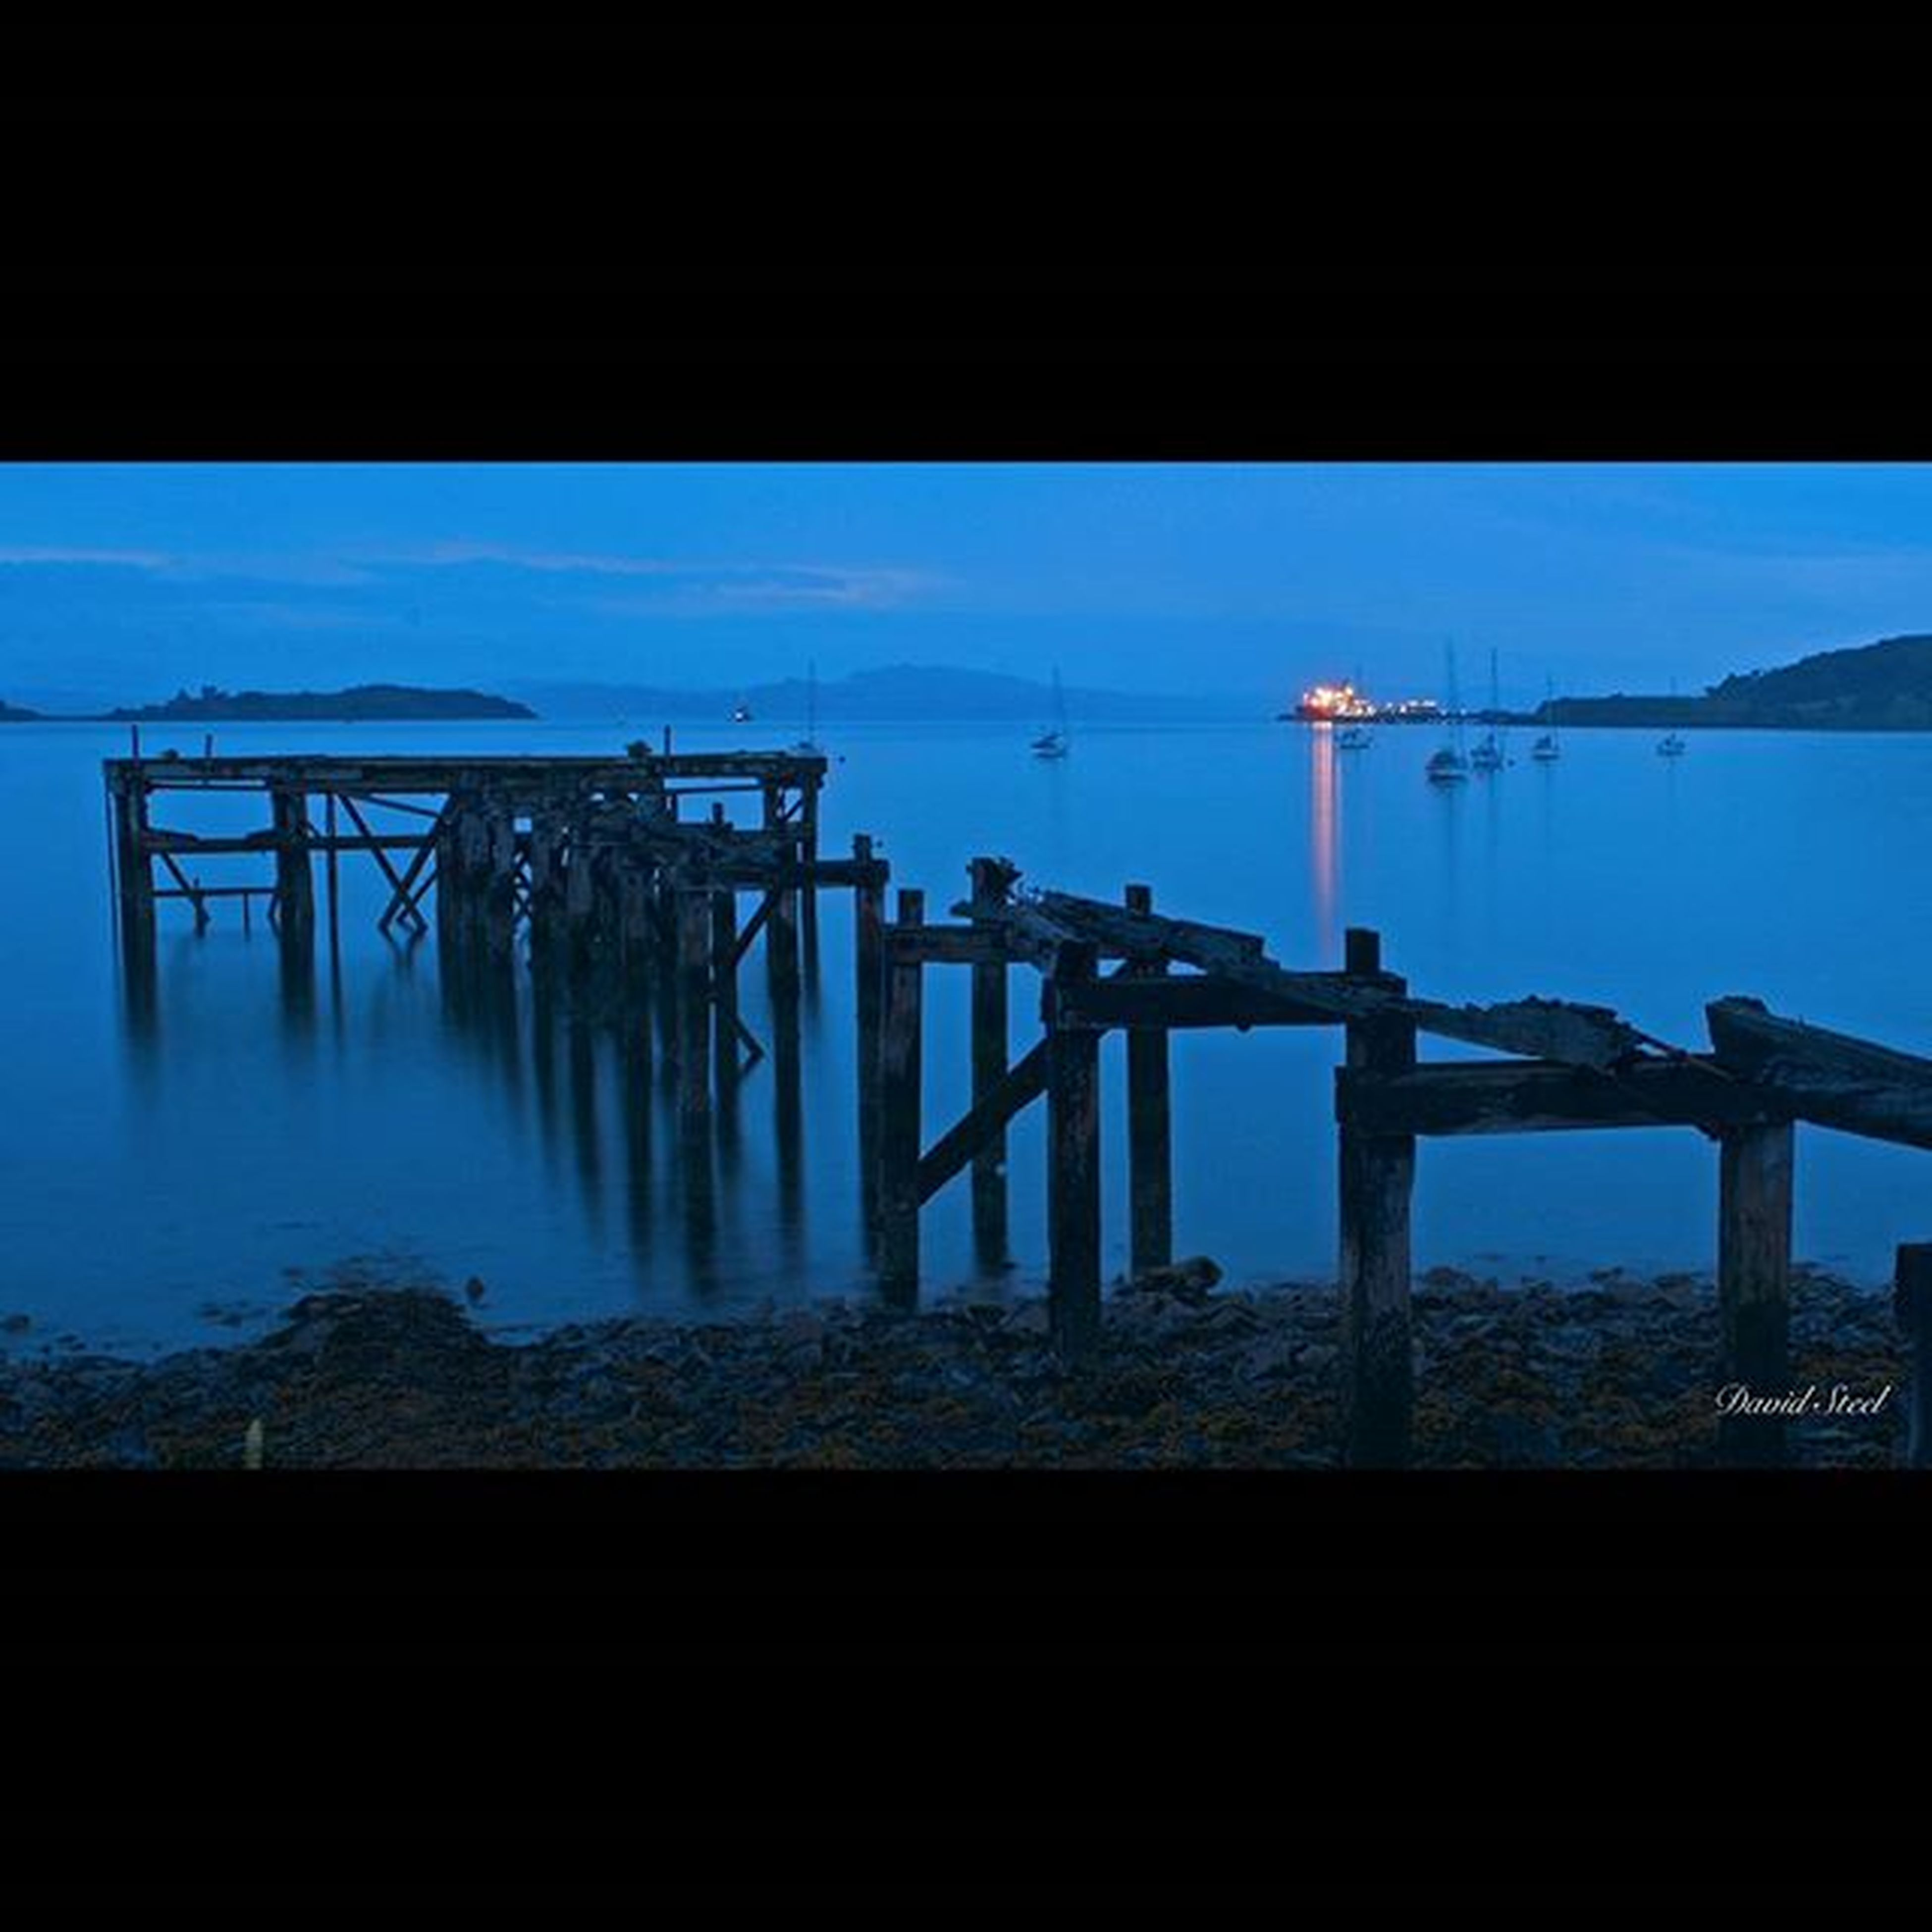 water, sea, blue, built structure, architecture, silhouette, sky, reflection, connection, bridge - man made structure, river, transportation, nature, waterfront, dusk, horizon over water, indoors, pier, tranquility